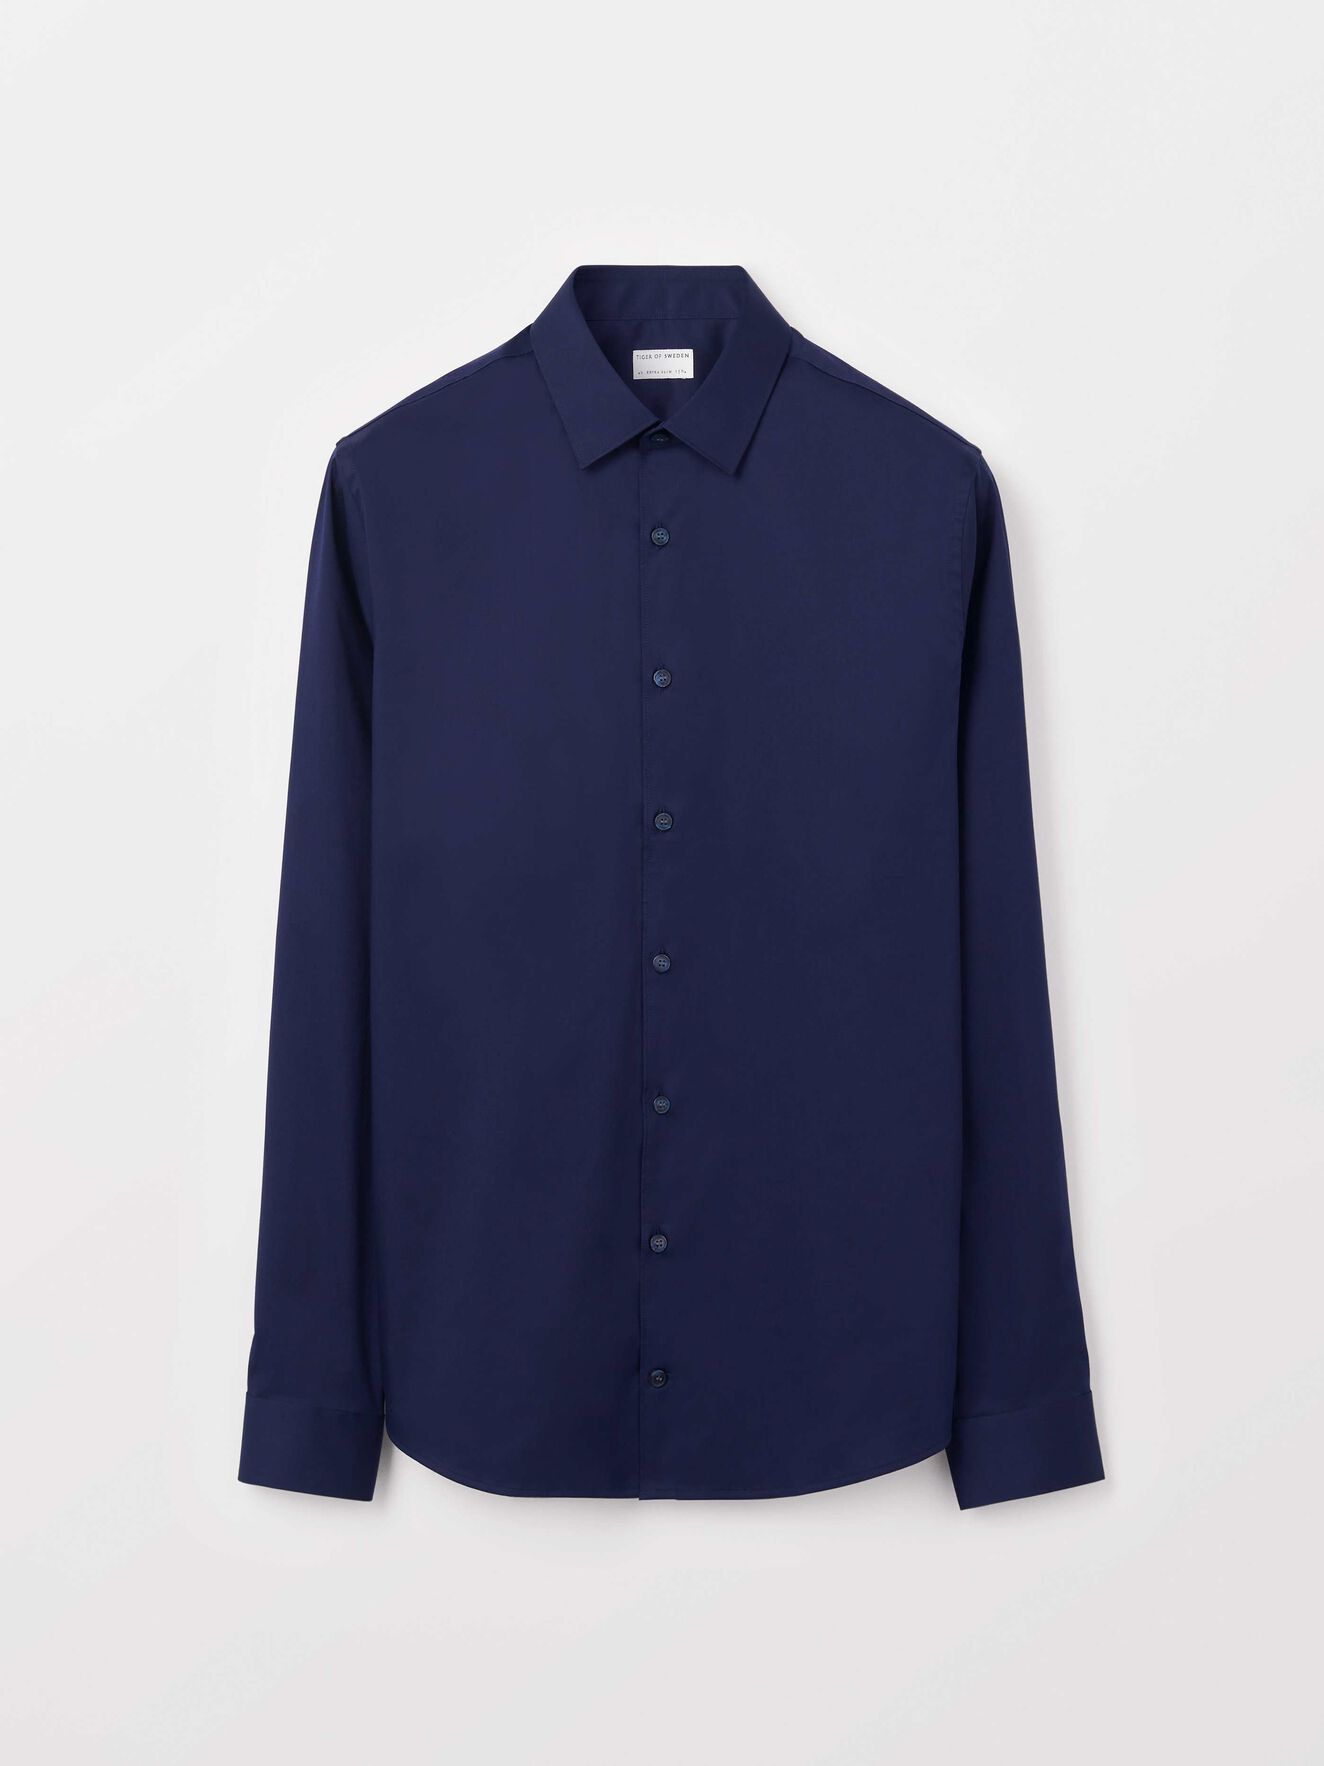 Filbrodie Shirt in Blue from Tiger of Sweden